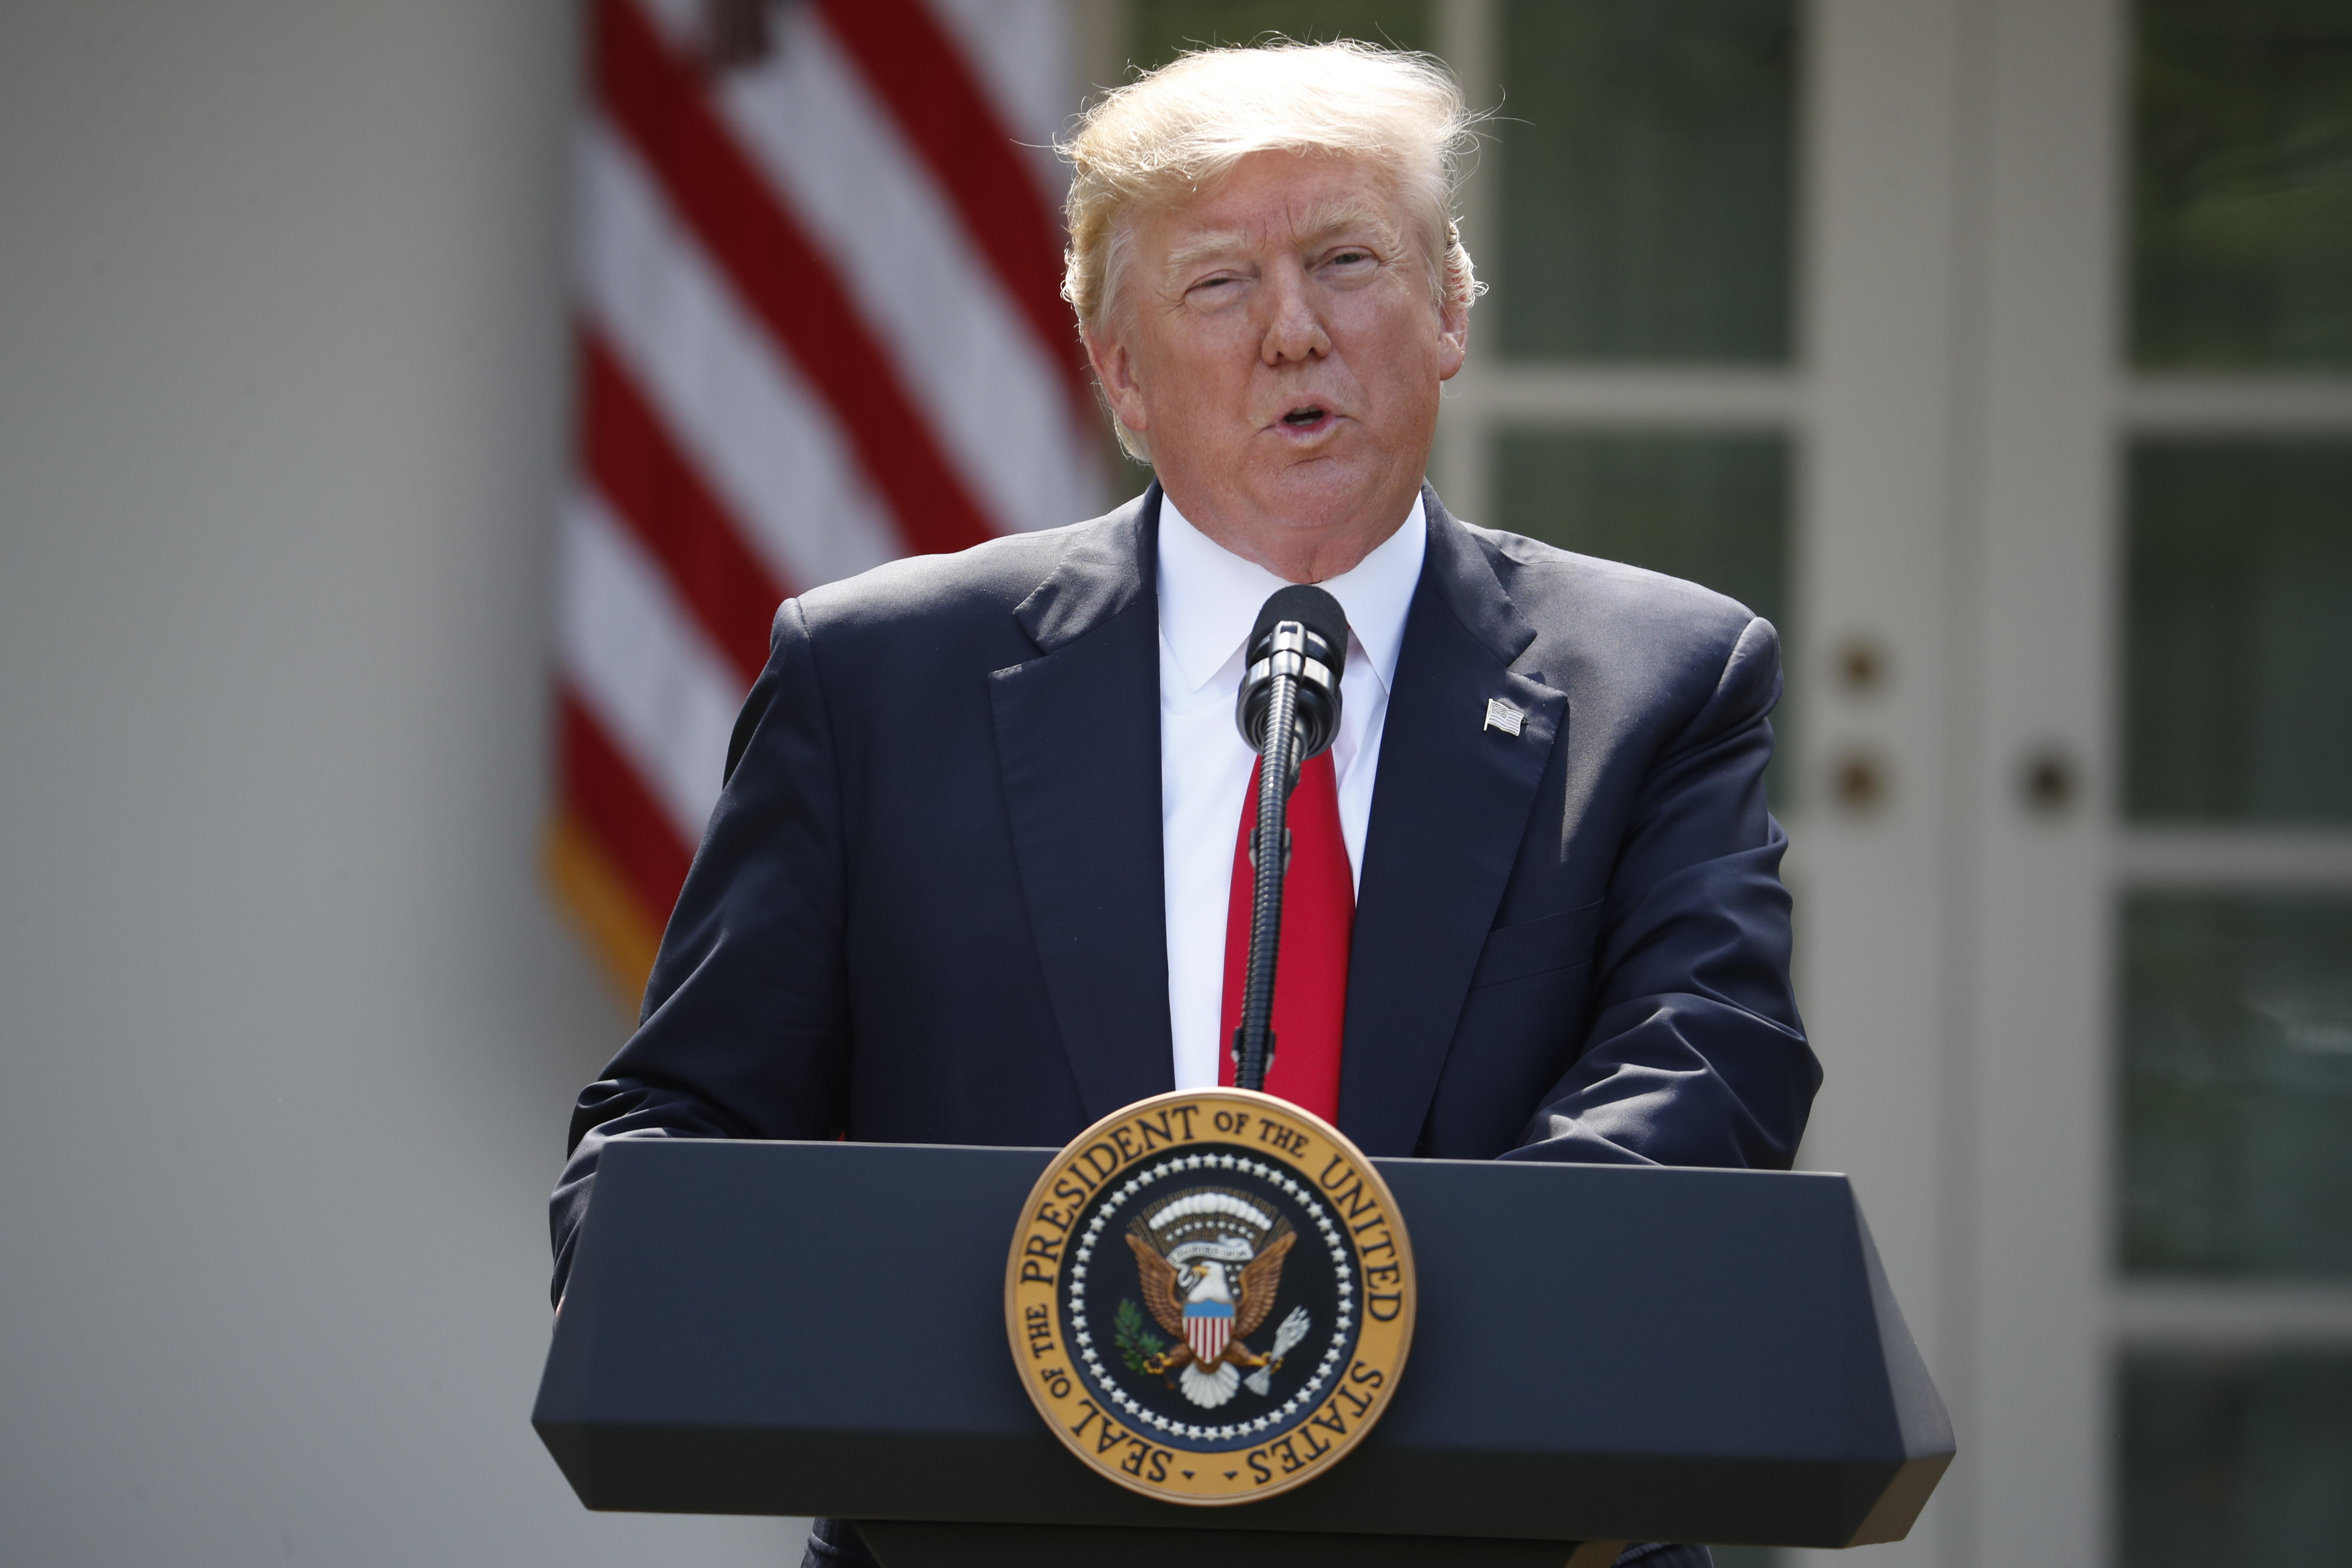 Under Trump, Americans' fears shift to health care, environment, WWIII